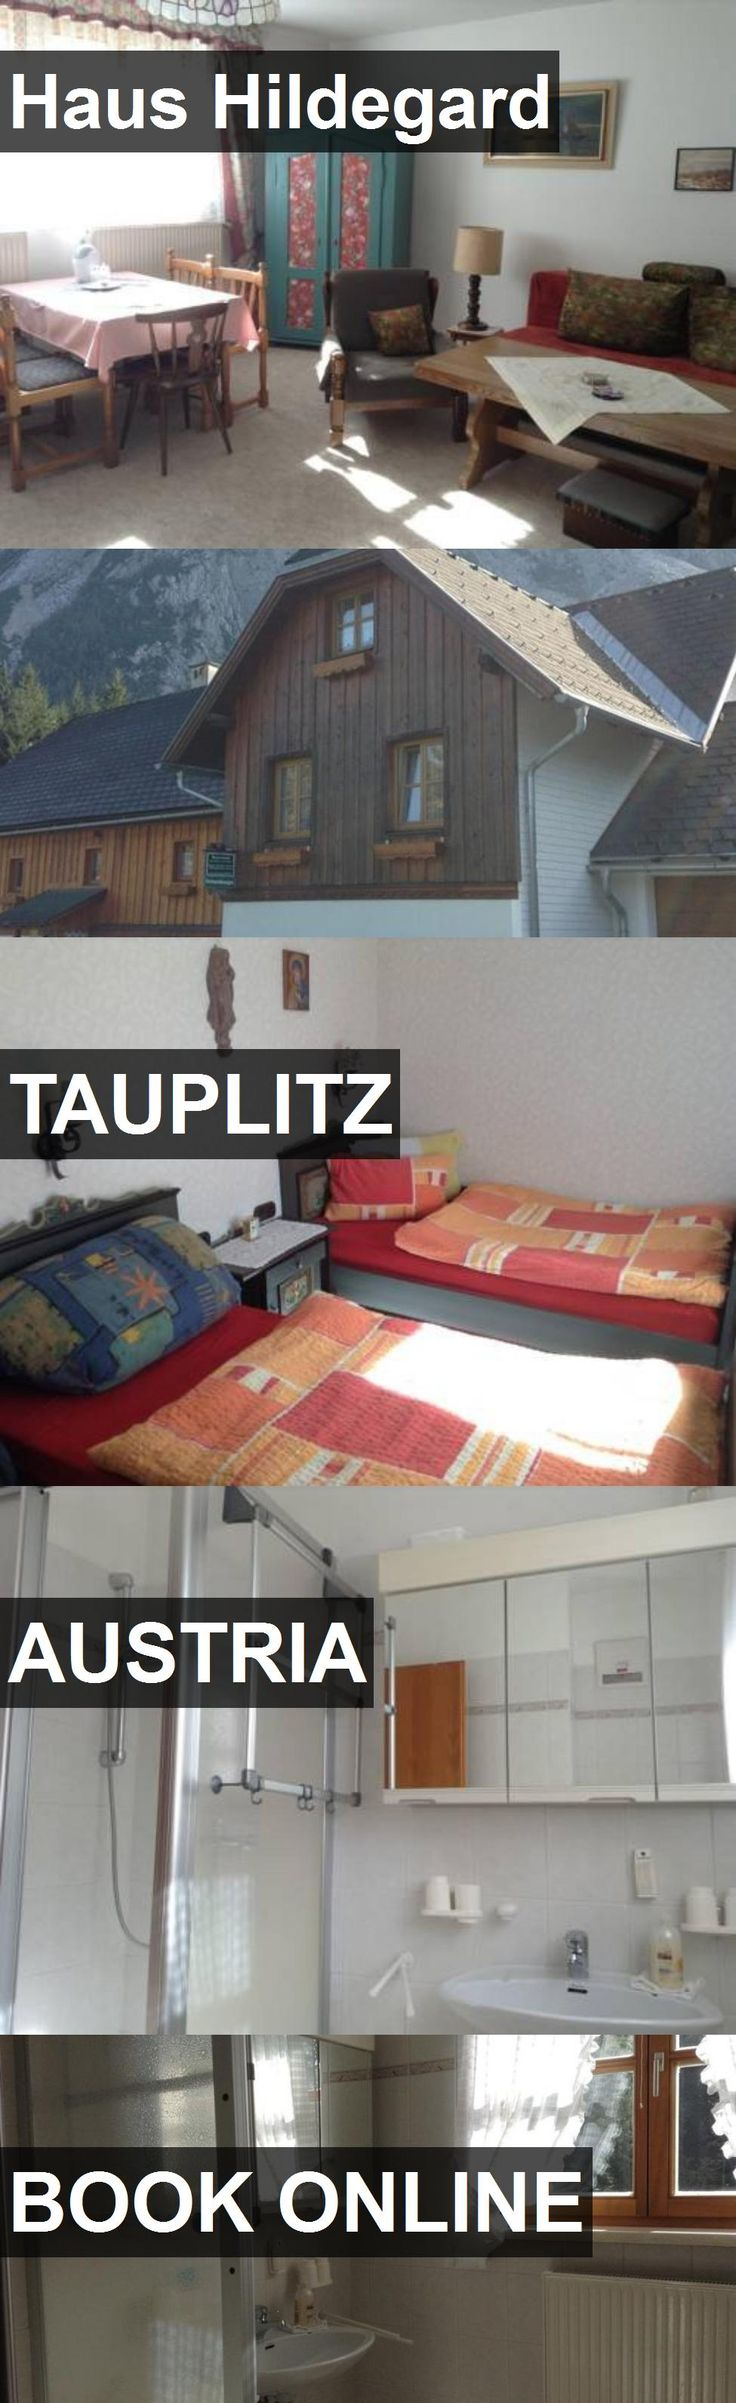 Hotel Haus Hildegard in Tauplitz, Austria. For more information, photos, reviews and best prices please follow the link. #Austria #Tauplitz #travel #vacation #hotel